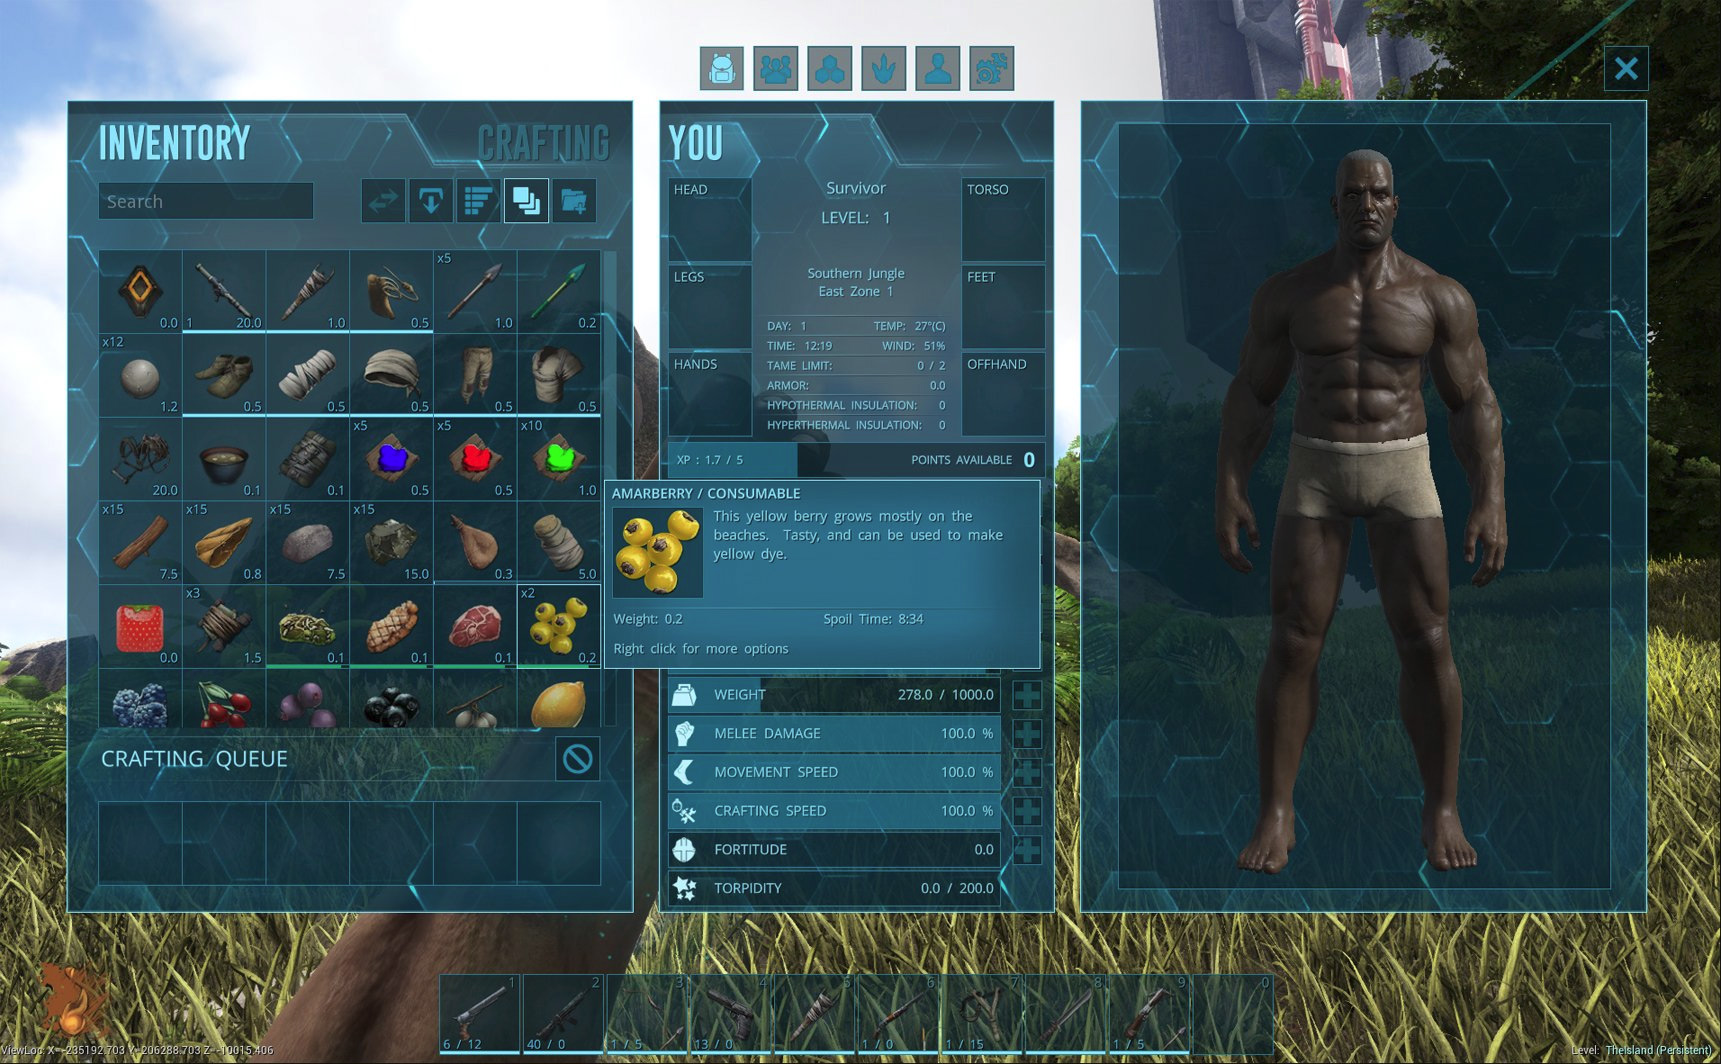 News ARK Survival Evolved To Overhaul Inventory In Next